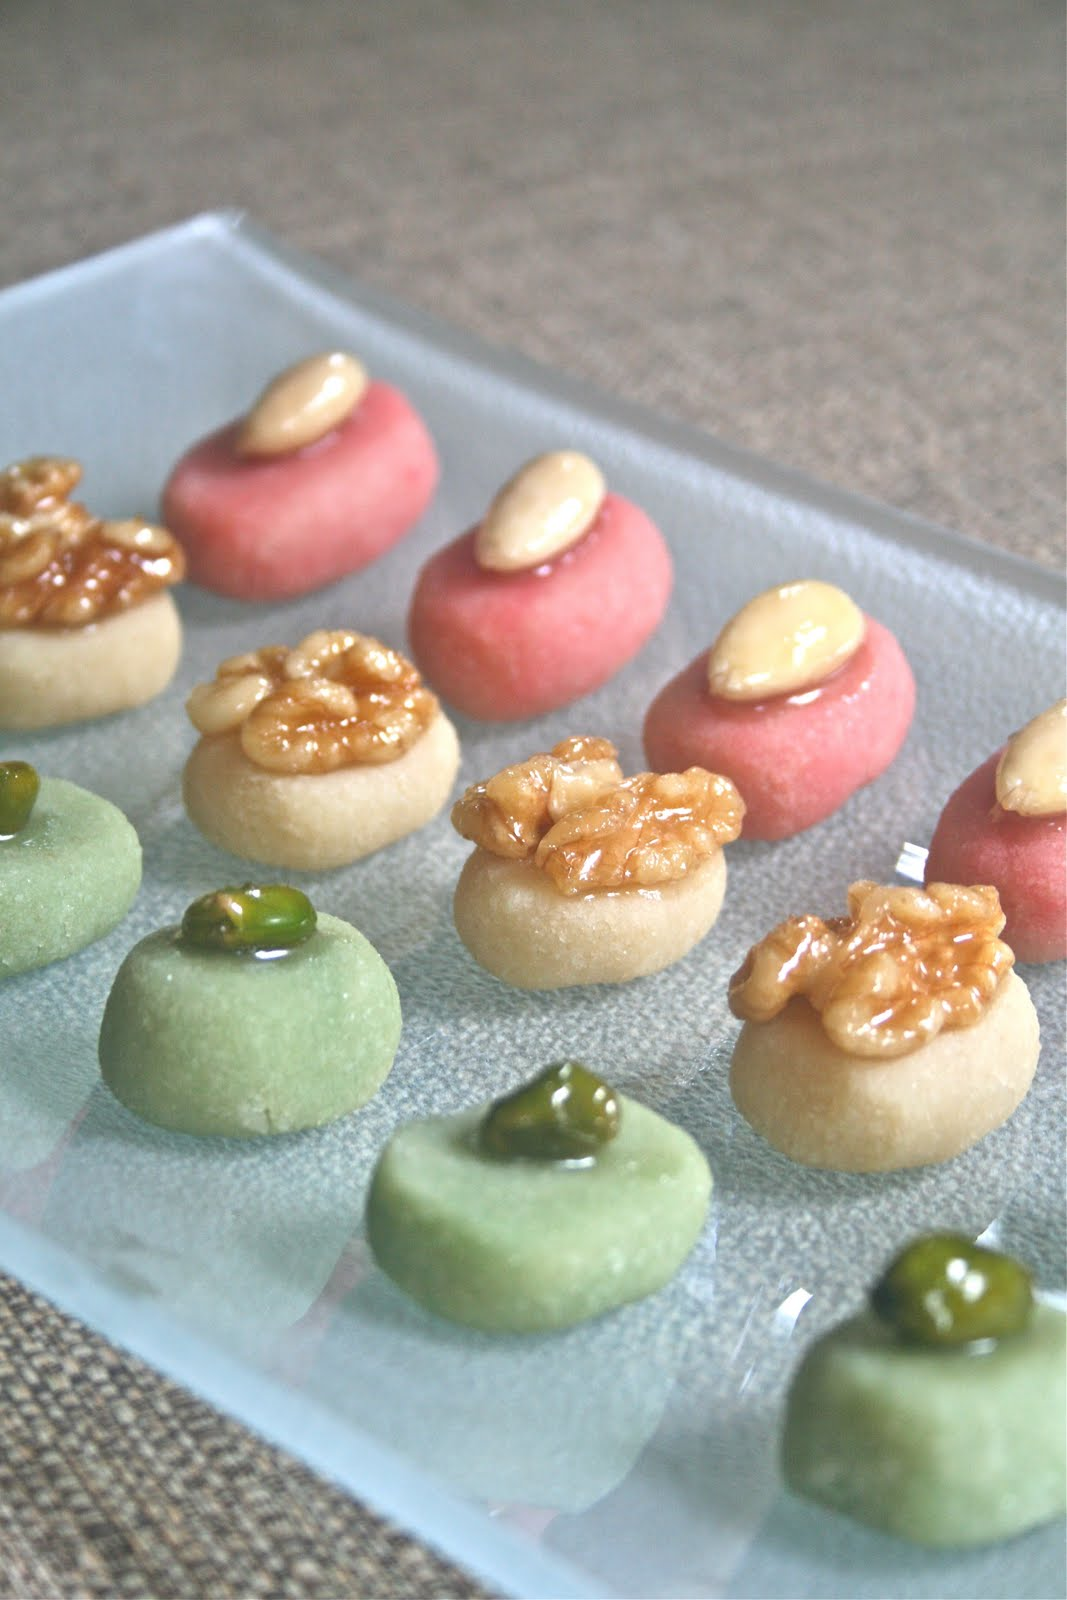 1000+ images about ALMOND PASTE & MARZIPAN on Pinterest.